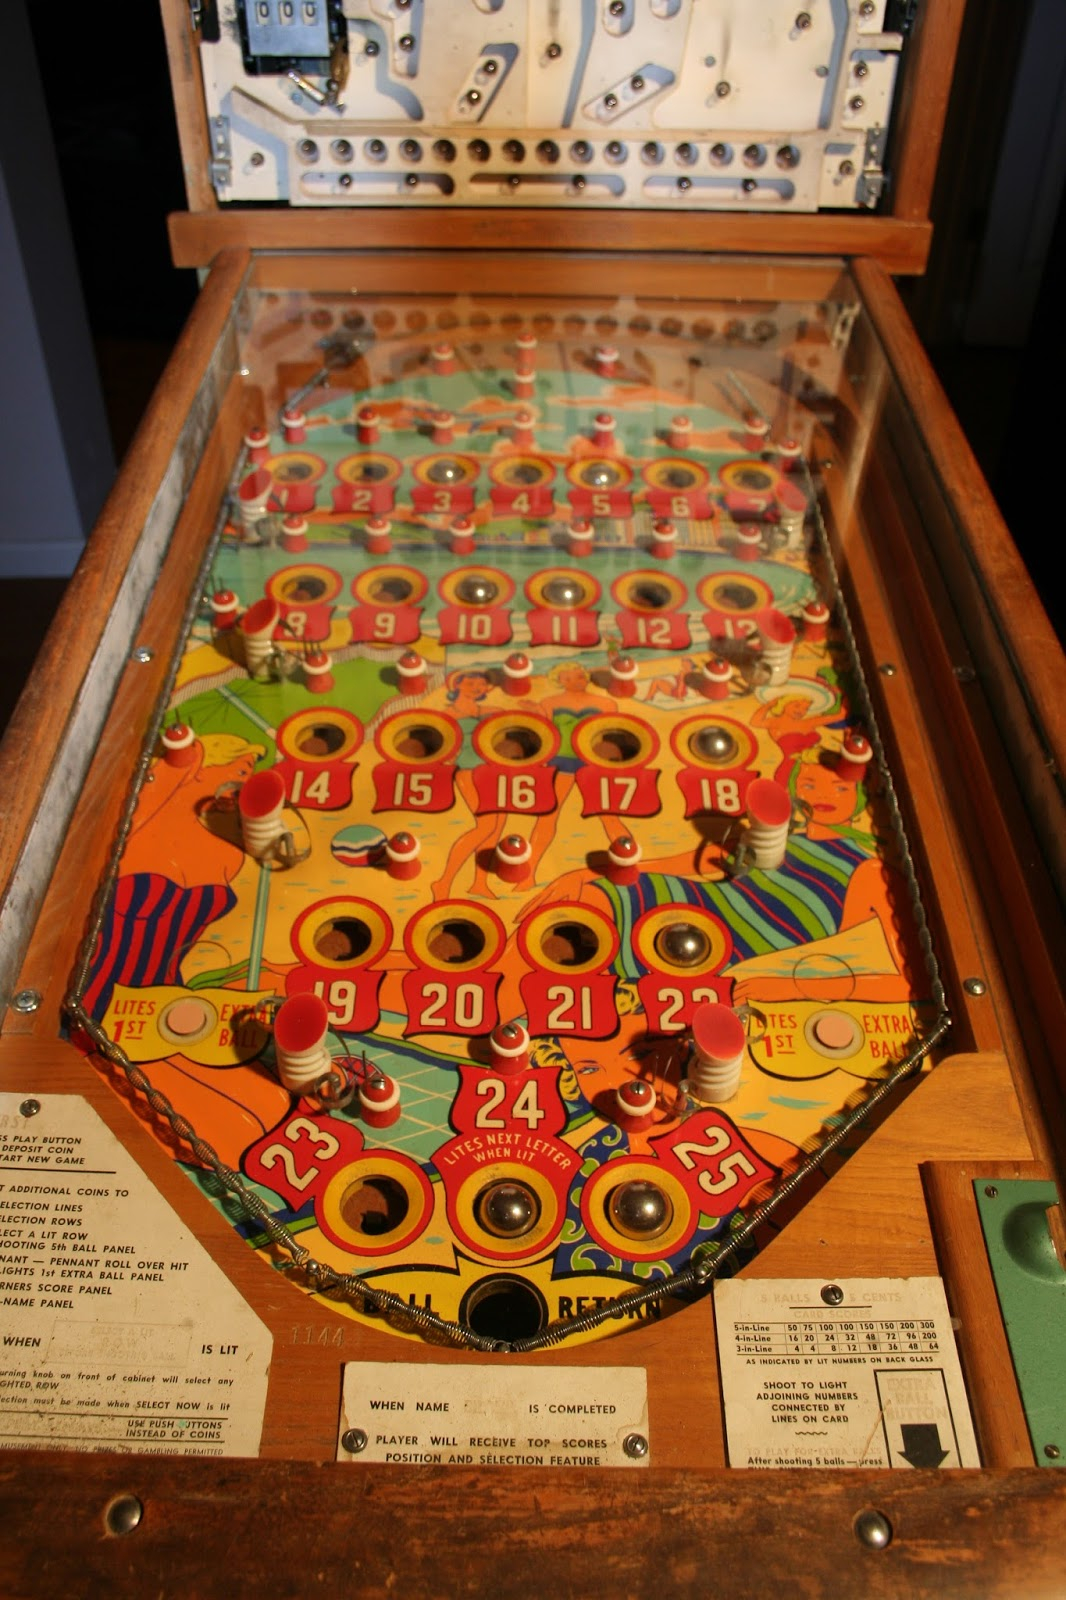 Pinball Repair And Fun: United Brazil Bingo Pinball regarding Bingo At Turning Stone March 13